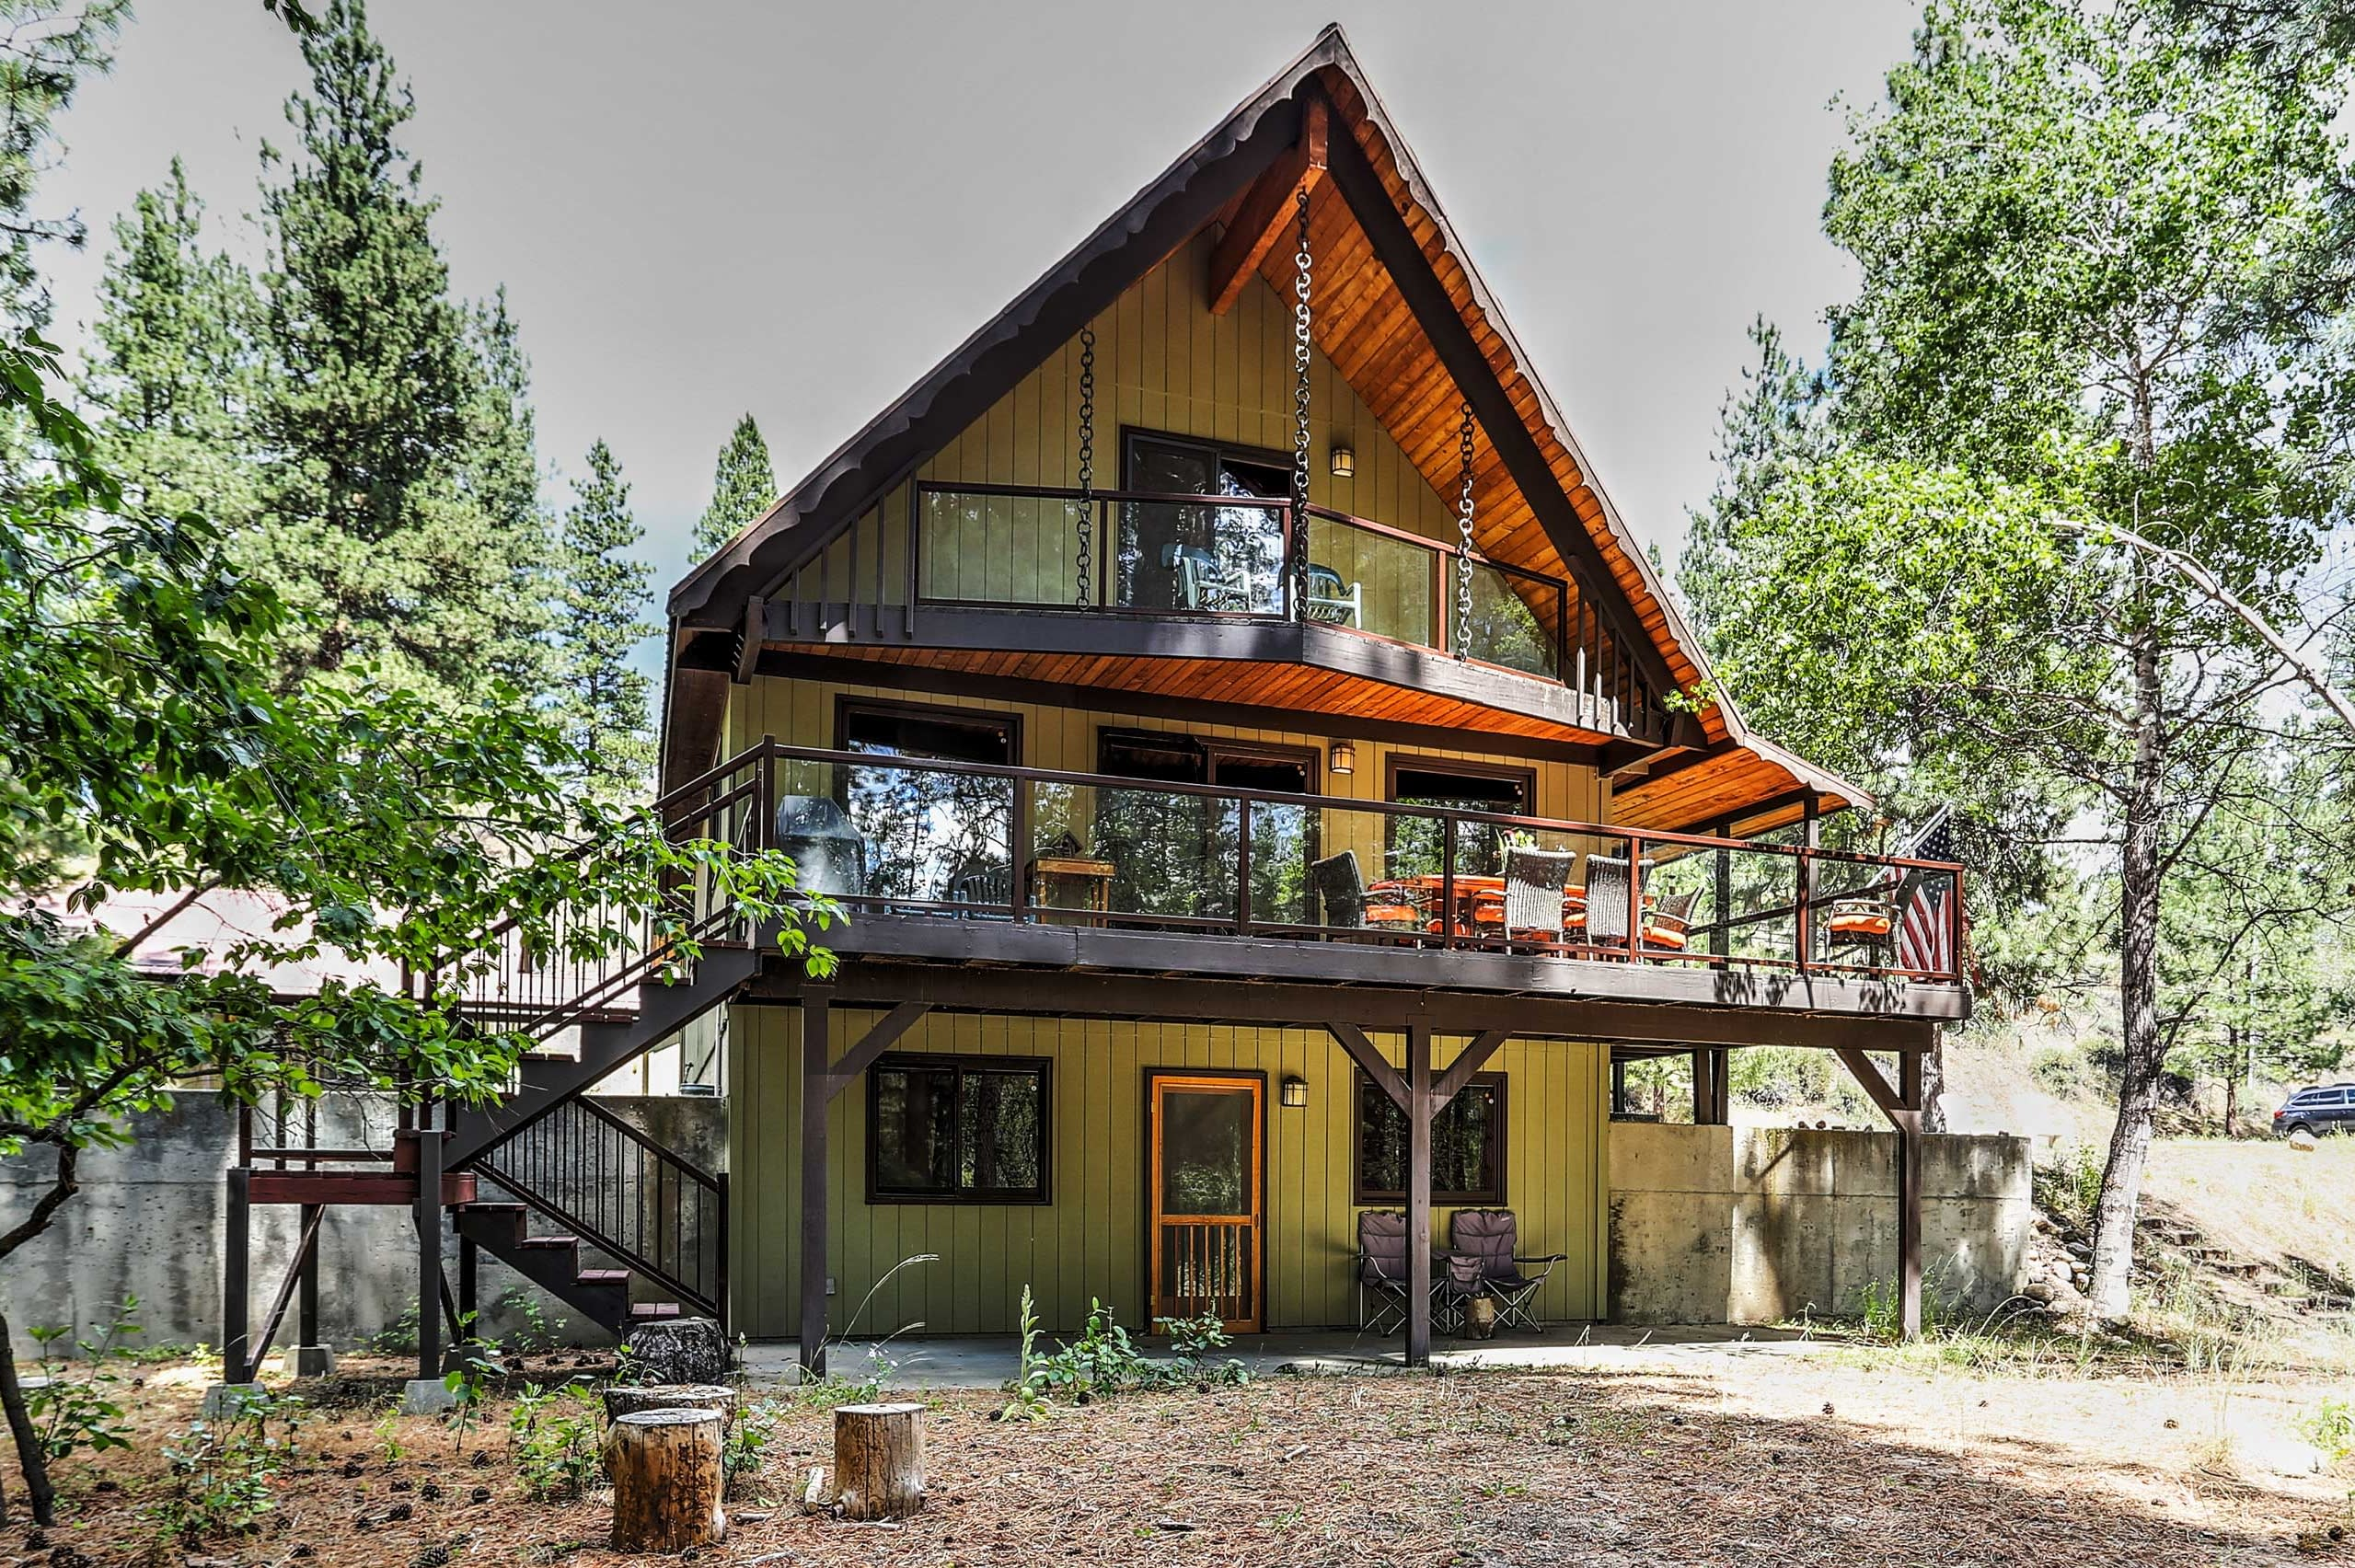 The beautiful house sits on 2 acres of wooded property.